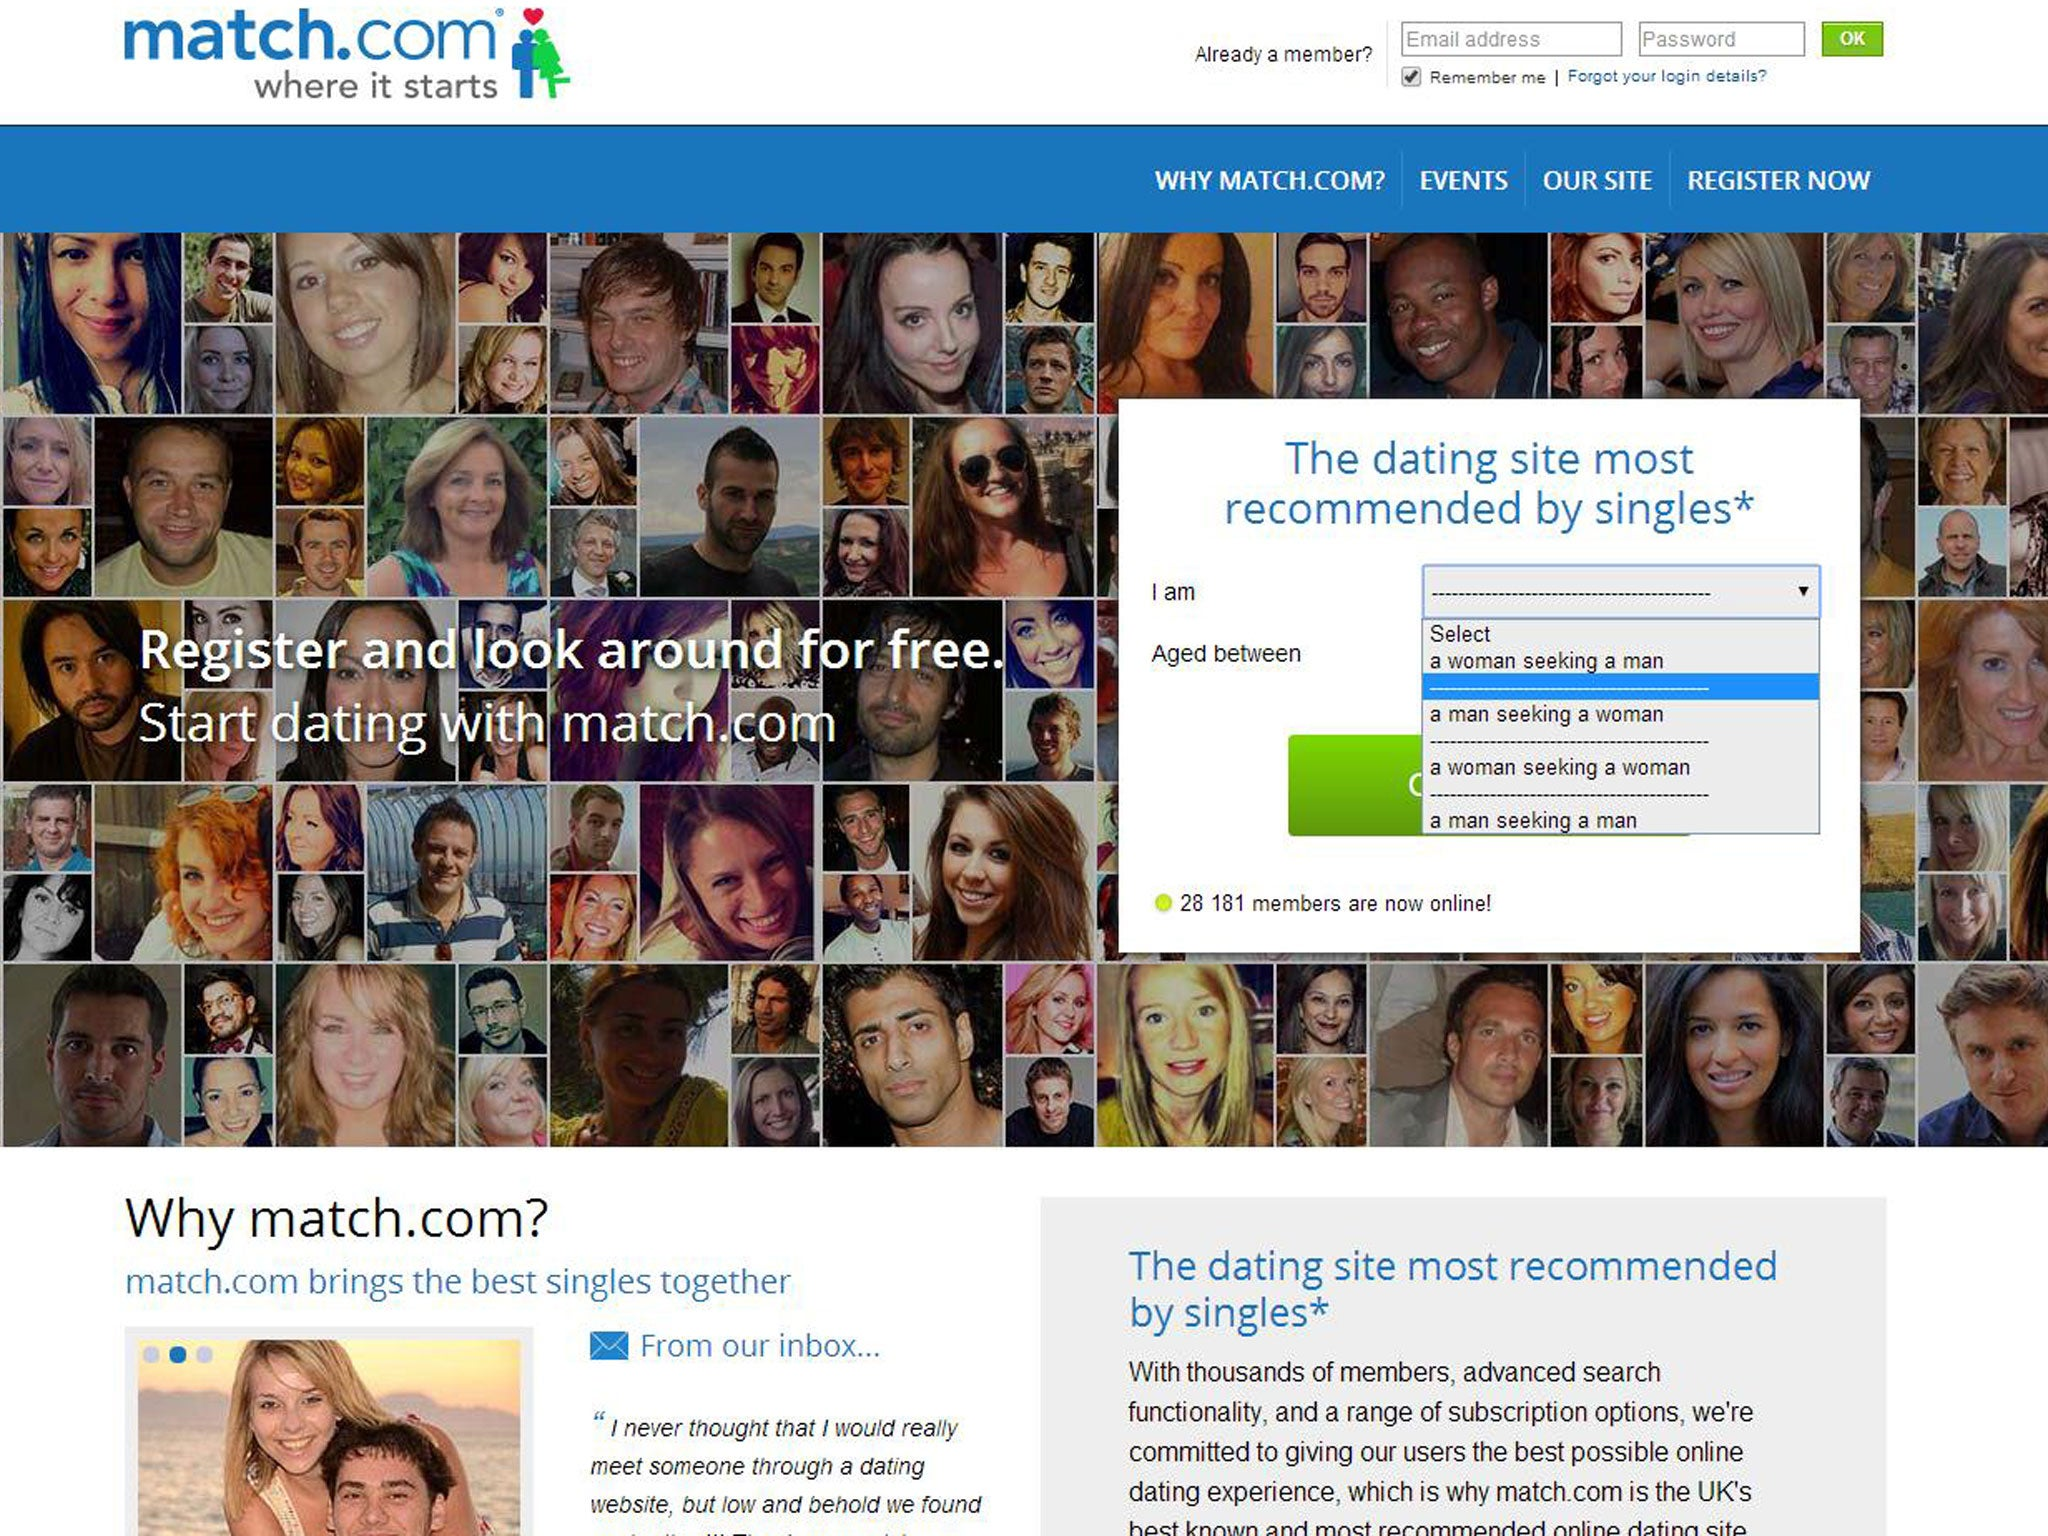 Who Do I Recommend Match.com or eHarmony